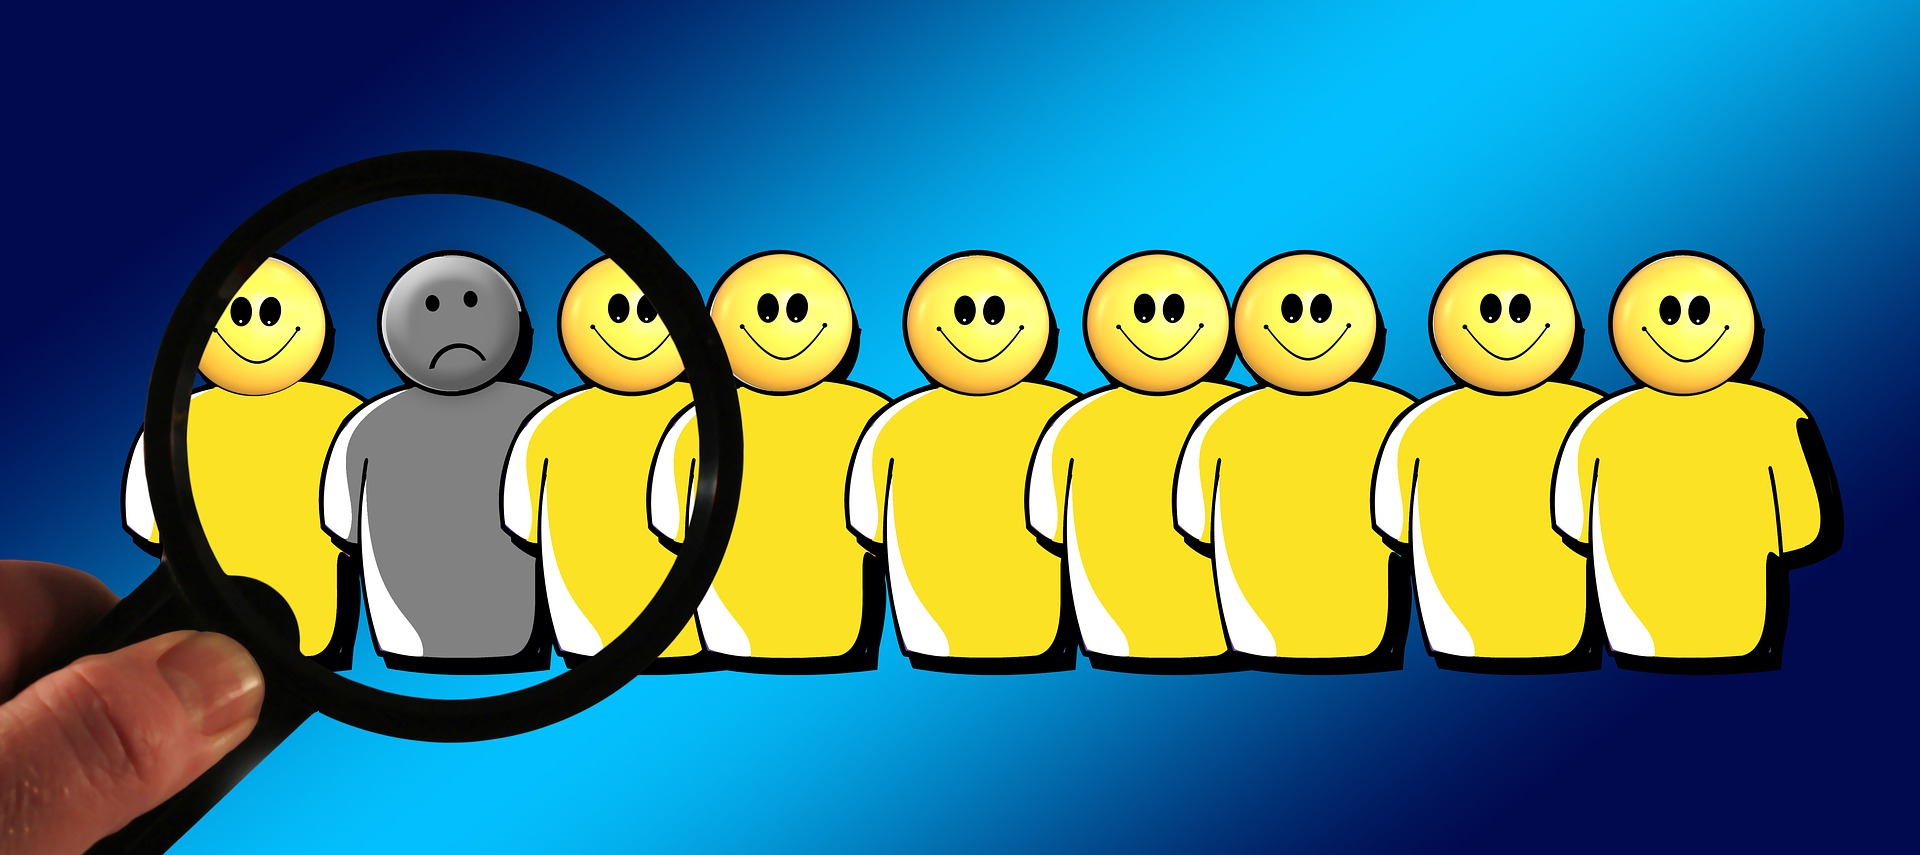 A row of smiling figures being examined under a magnifying glass that reveals one frowning figure amid the bunch.